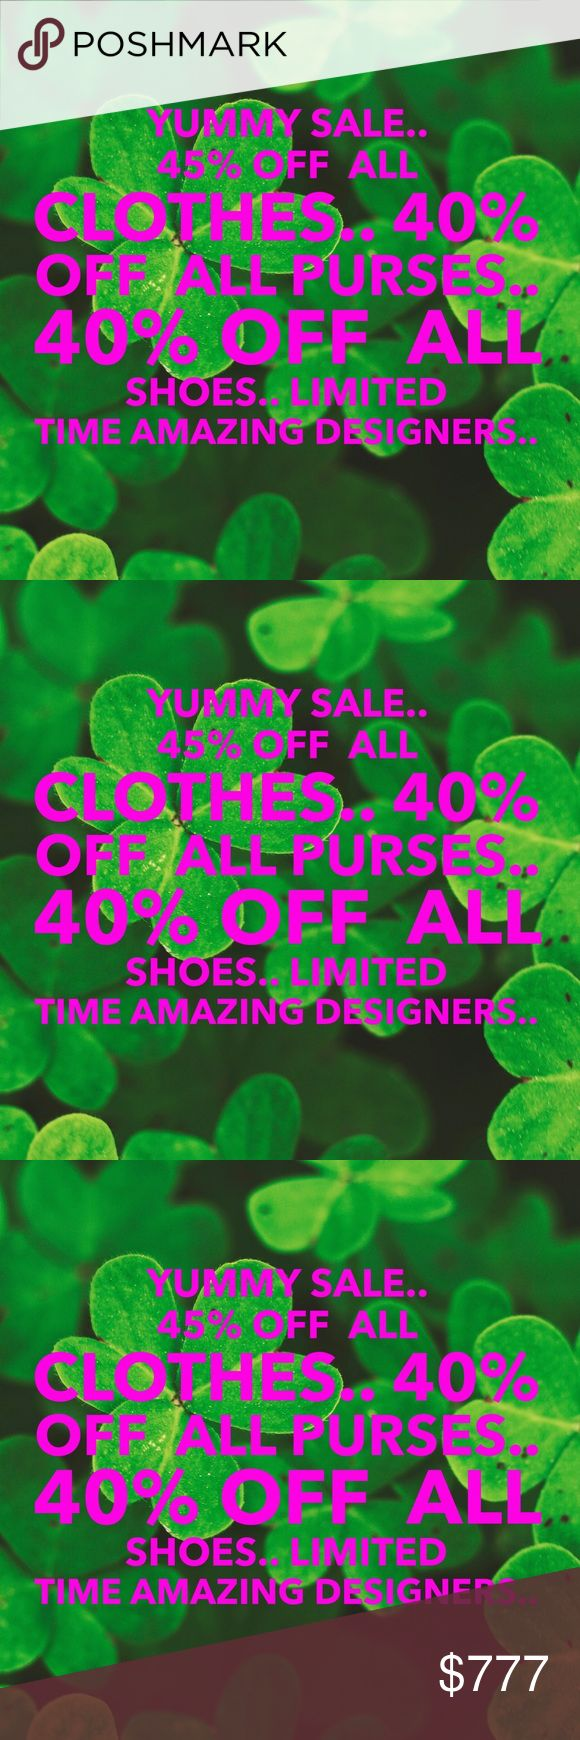 YUMMY SALE..  45% Off Clothes.40% Shoes.40% Purses YUMMY SALE..  45% Off Clothes..40% Shoes..40% Purses..  ~~LIMITED TIME.  ~~Discount will not apply to three $3 items, $5 items or Free items.  ~~Please look at all photos and read descriptions carefully before you purchase.  ~~Items may not be returned.  ~~Reposh.   ~~Press like on any item to learn about future price breaks.   <<<<I  will have to create your listing.>>>  ~~Some items may receive shipping discounts. ~~No trades. No PayPal…